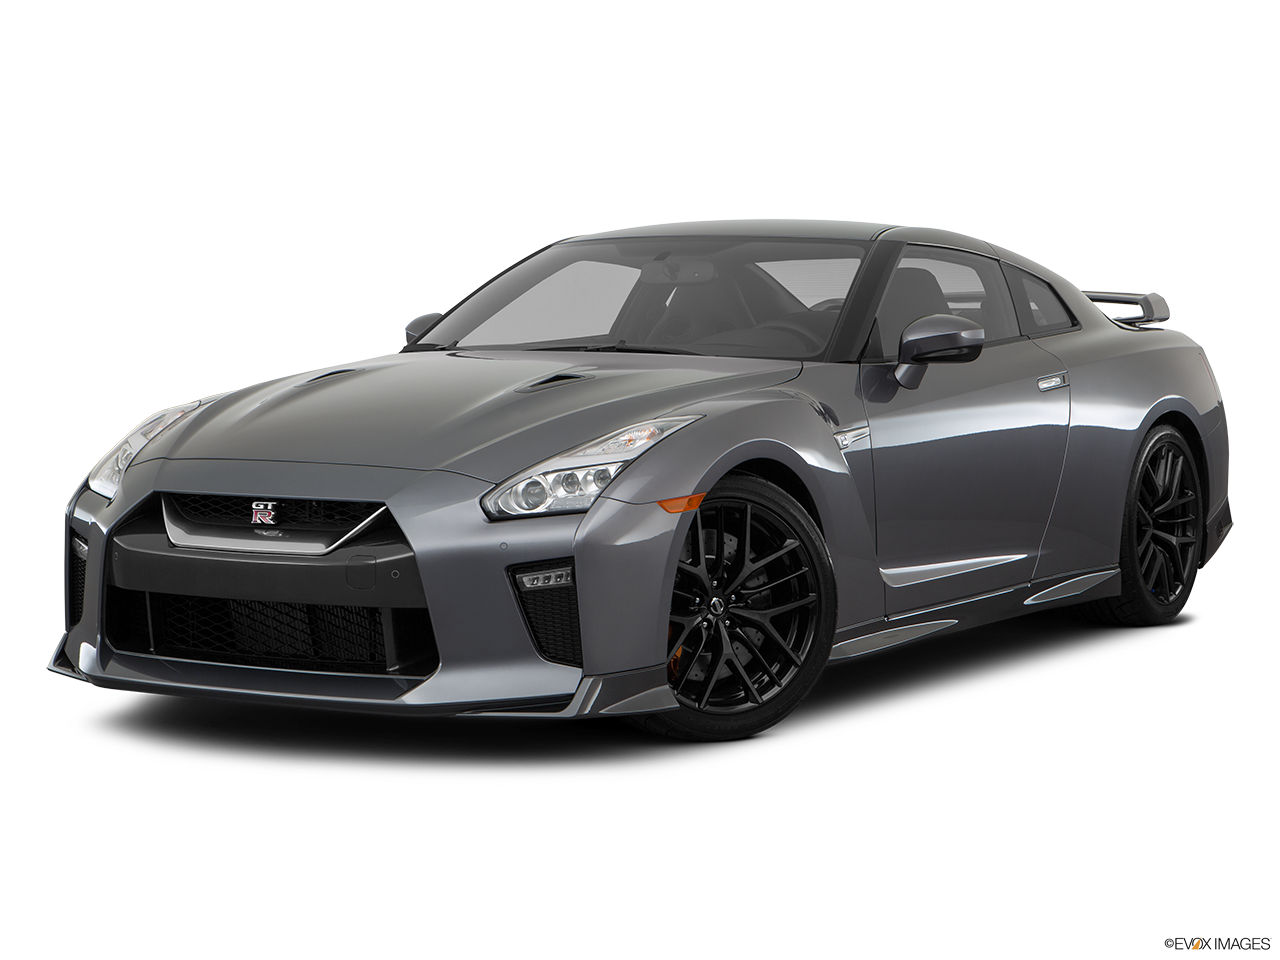 Test Drive A 2017 Nissan GT-R at Palm Springs Nissan